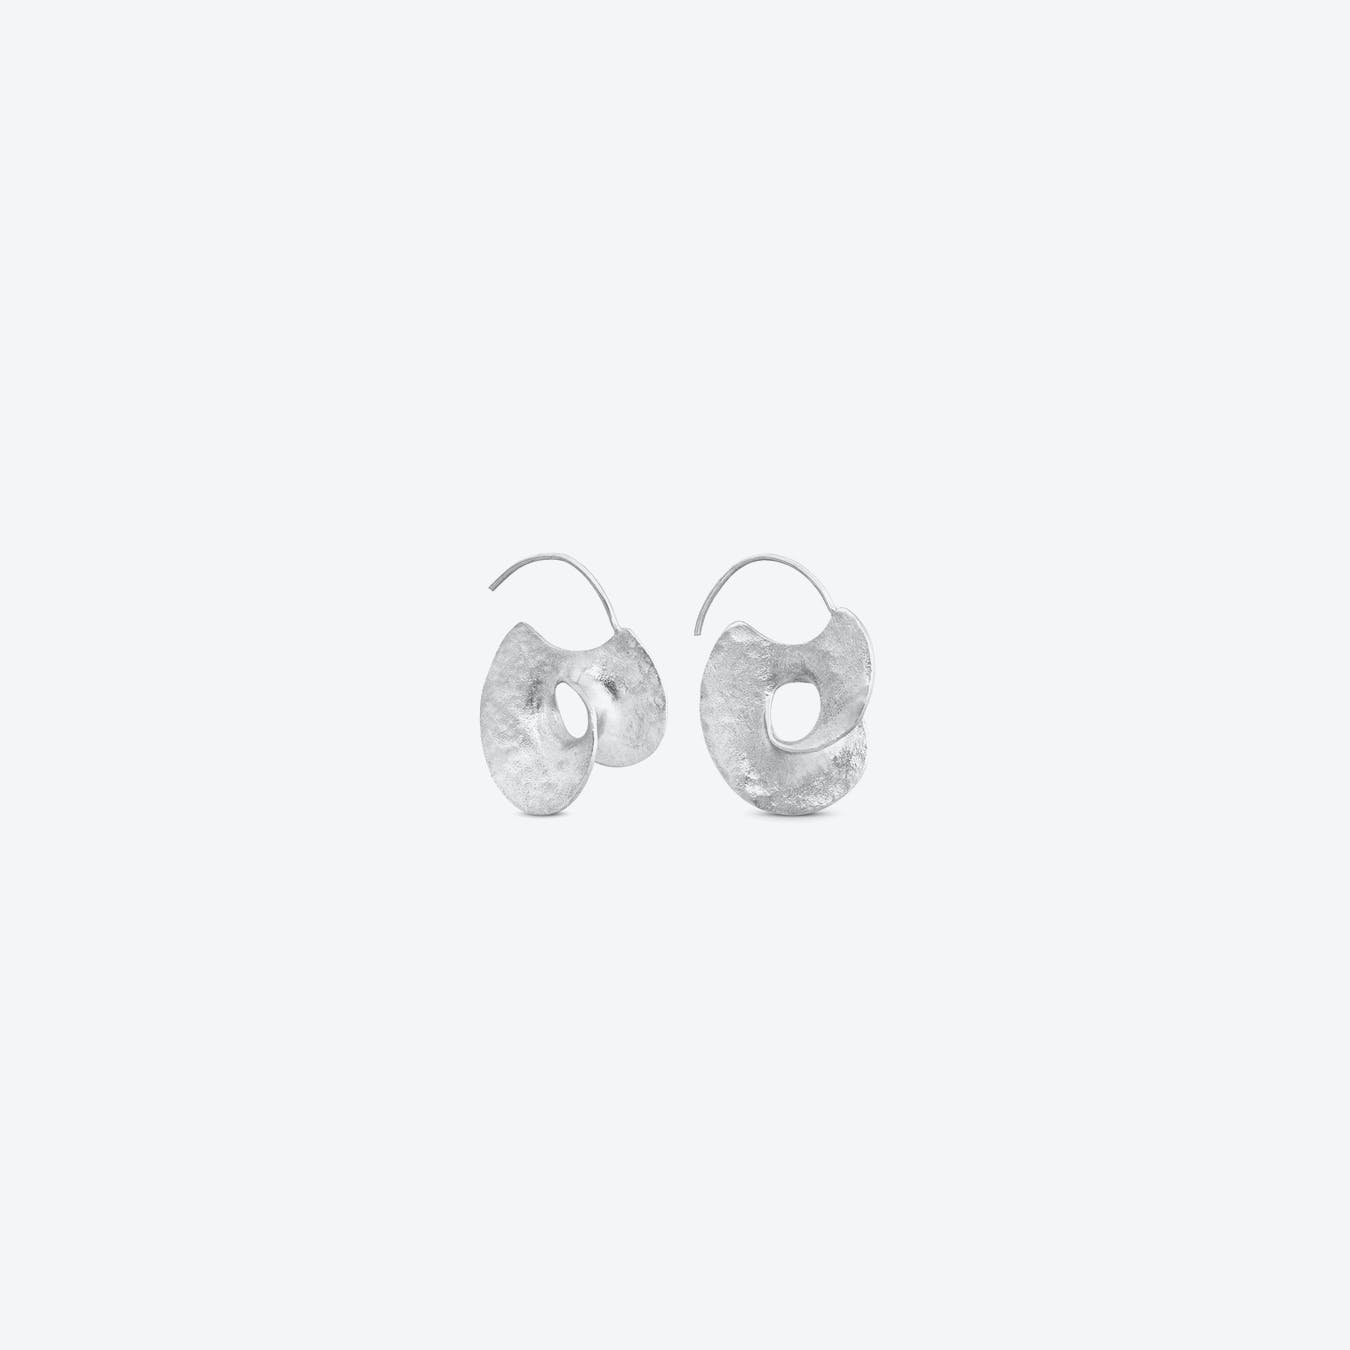 Silver Infinite Love Earrings